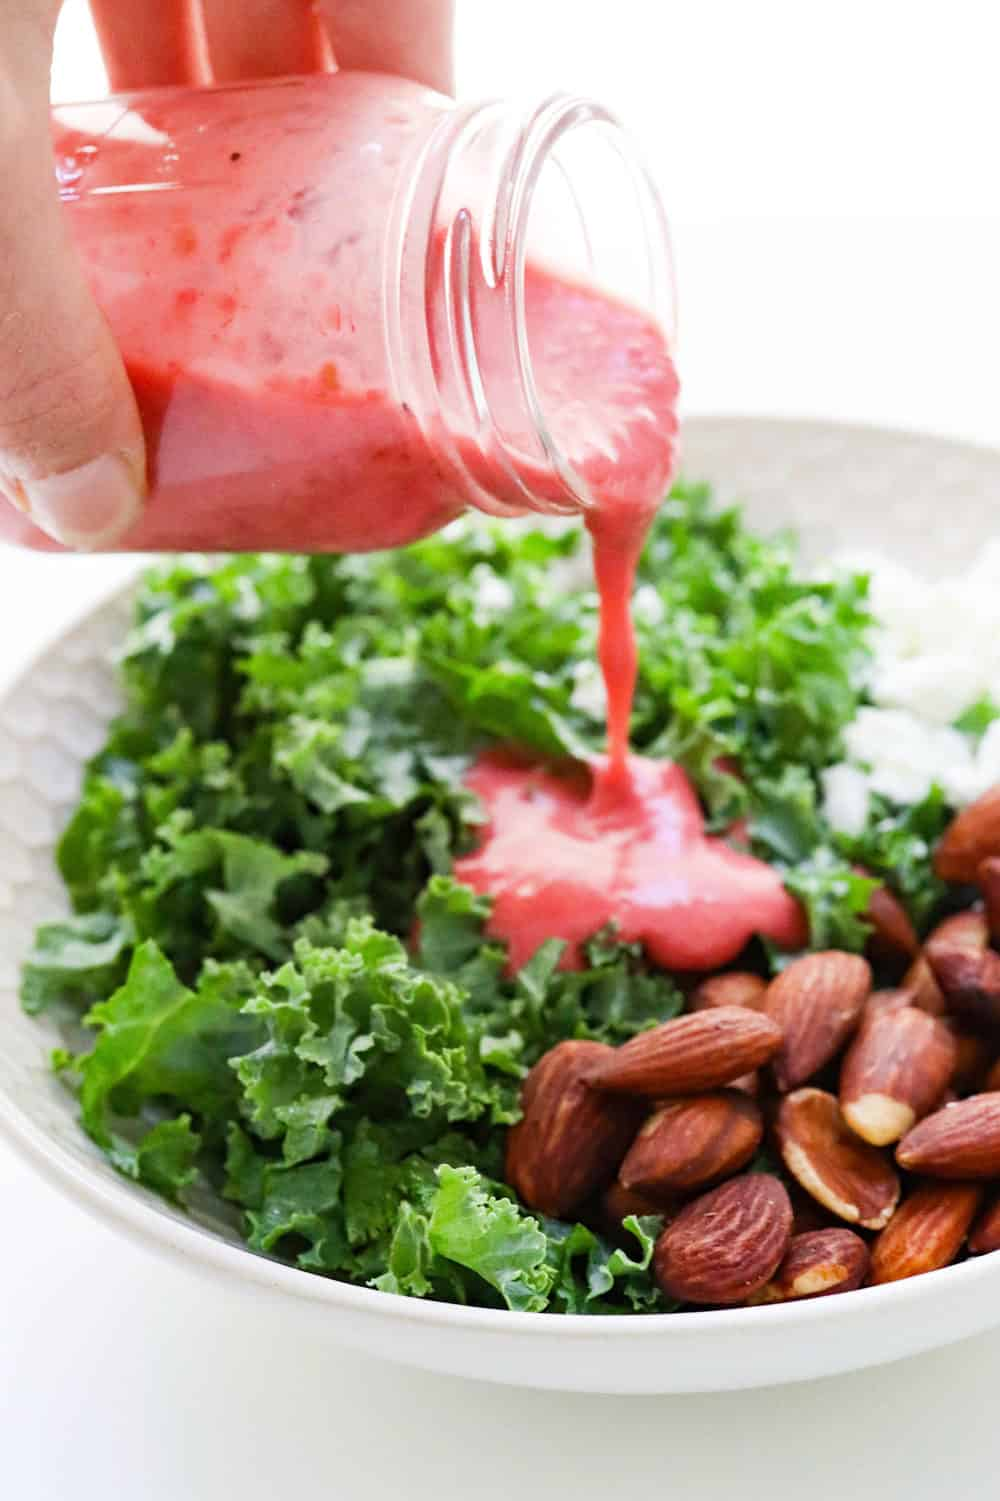 pouring healthy raspberry salad dressing onto kale salad